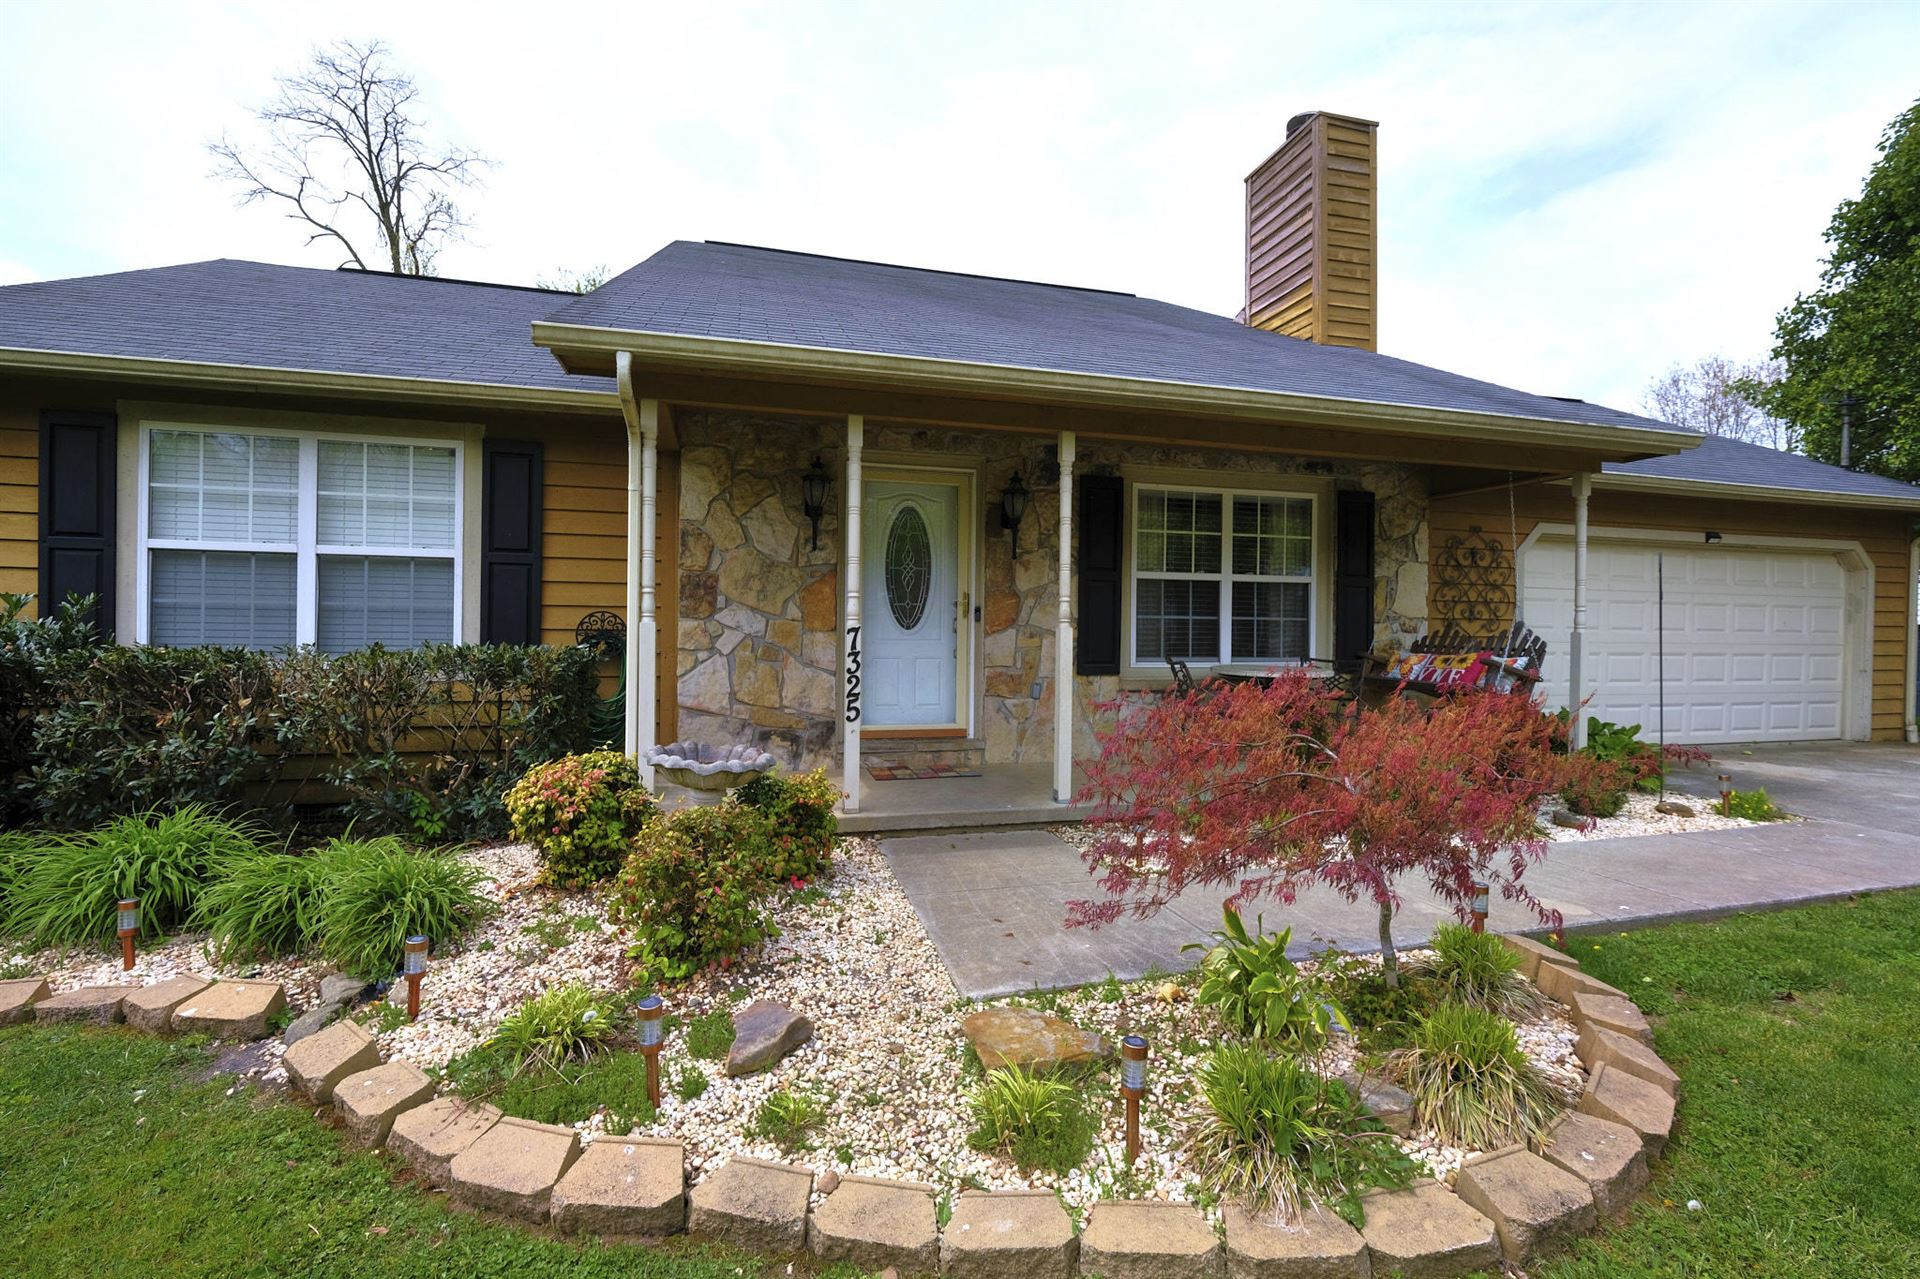 Photo of 7325 Foxhaven Rd, Knoxville, TN 37918 (MLS # 1149102)